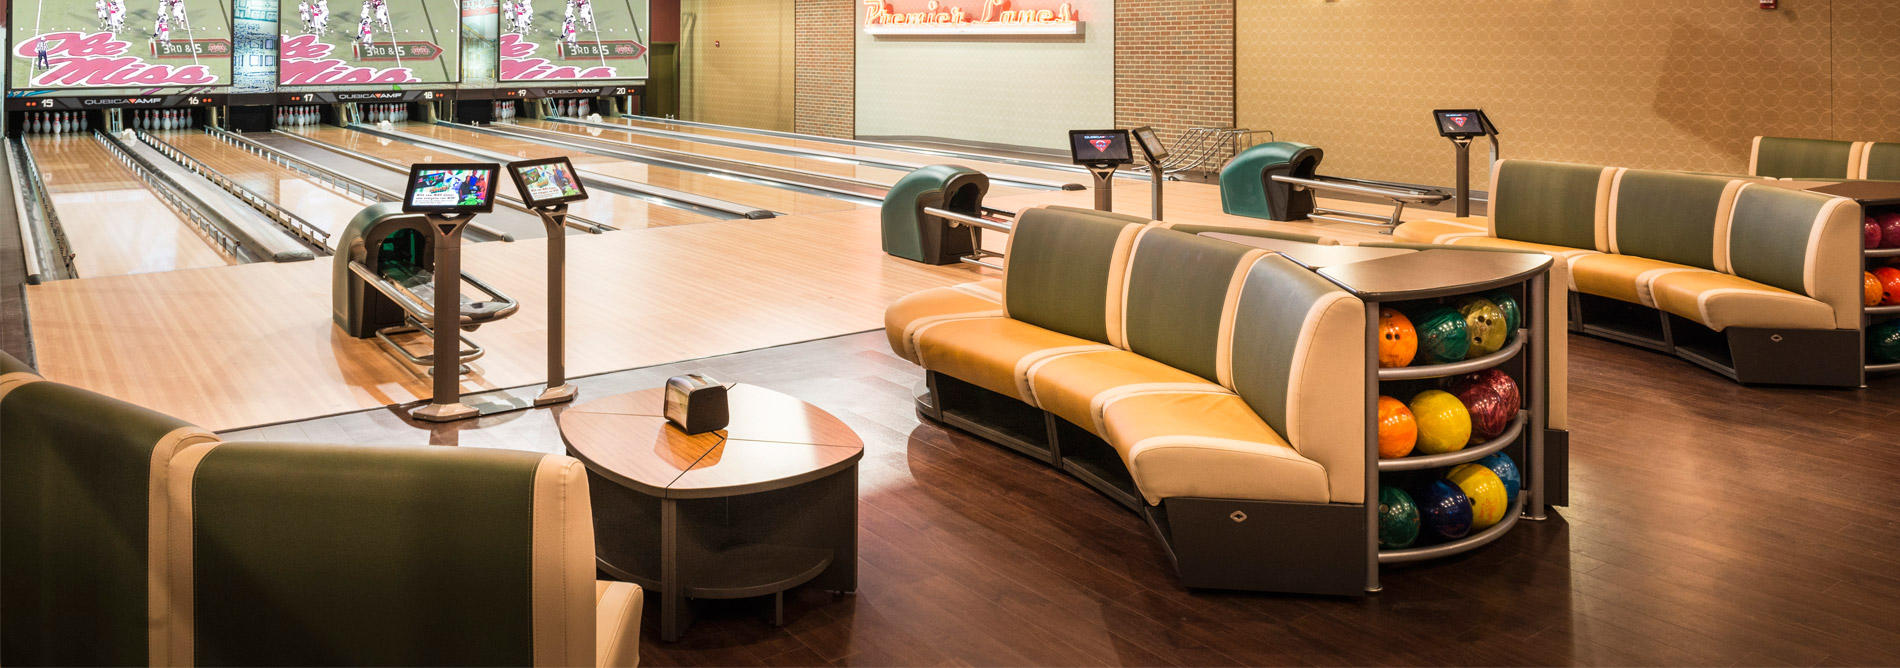 Great Bowling QubicaAMF Furniture Harmony Banner